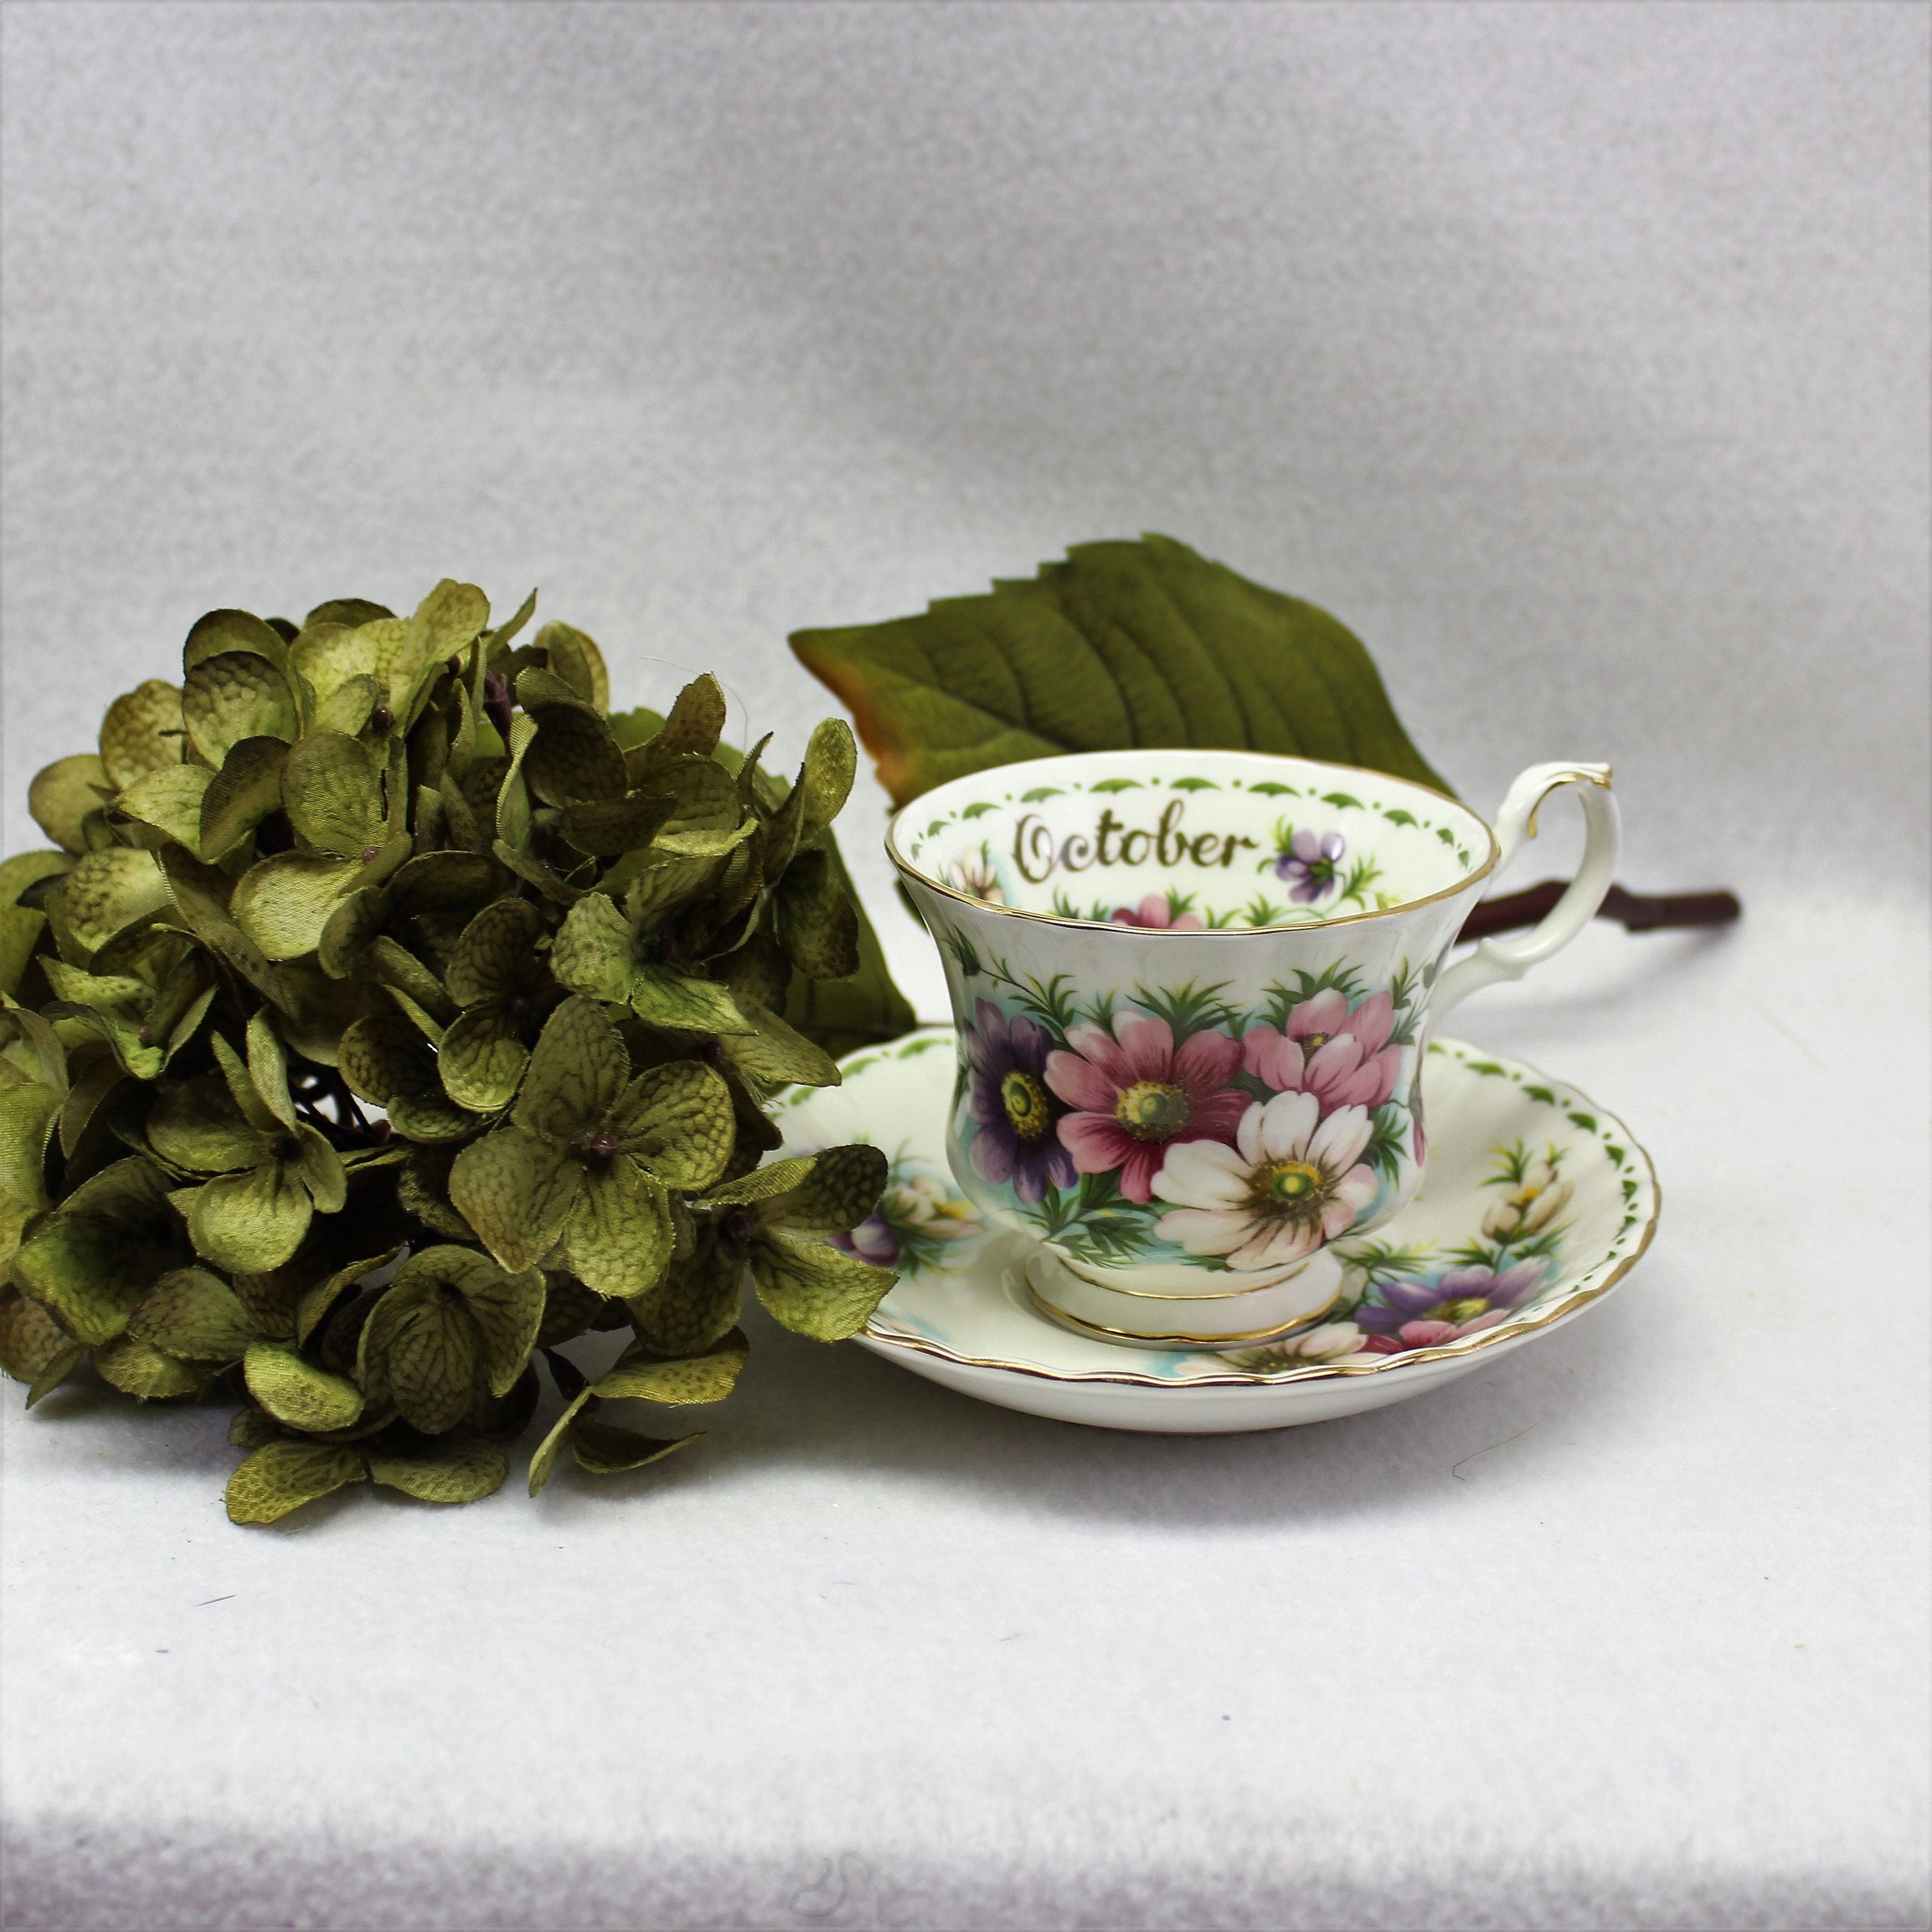 Royal albert flower of the month tea cup october cosmos bone china royal albert flower of the month tea cup october cosmos bone china made in england birthday gift for october cosmos flower lover izmirmasajfo